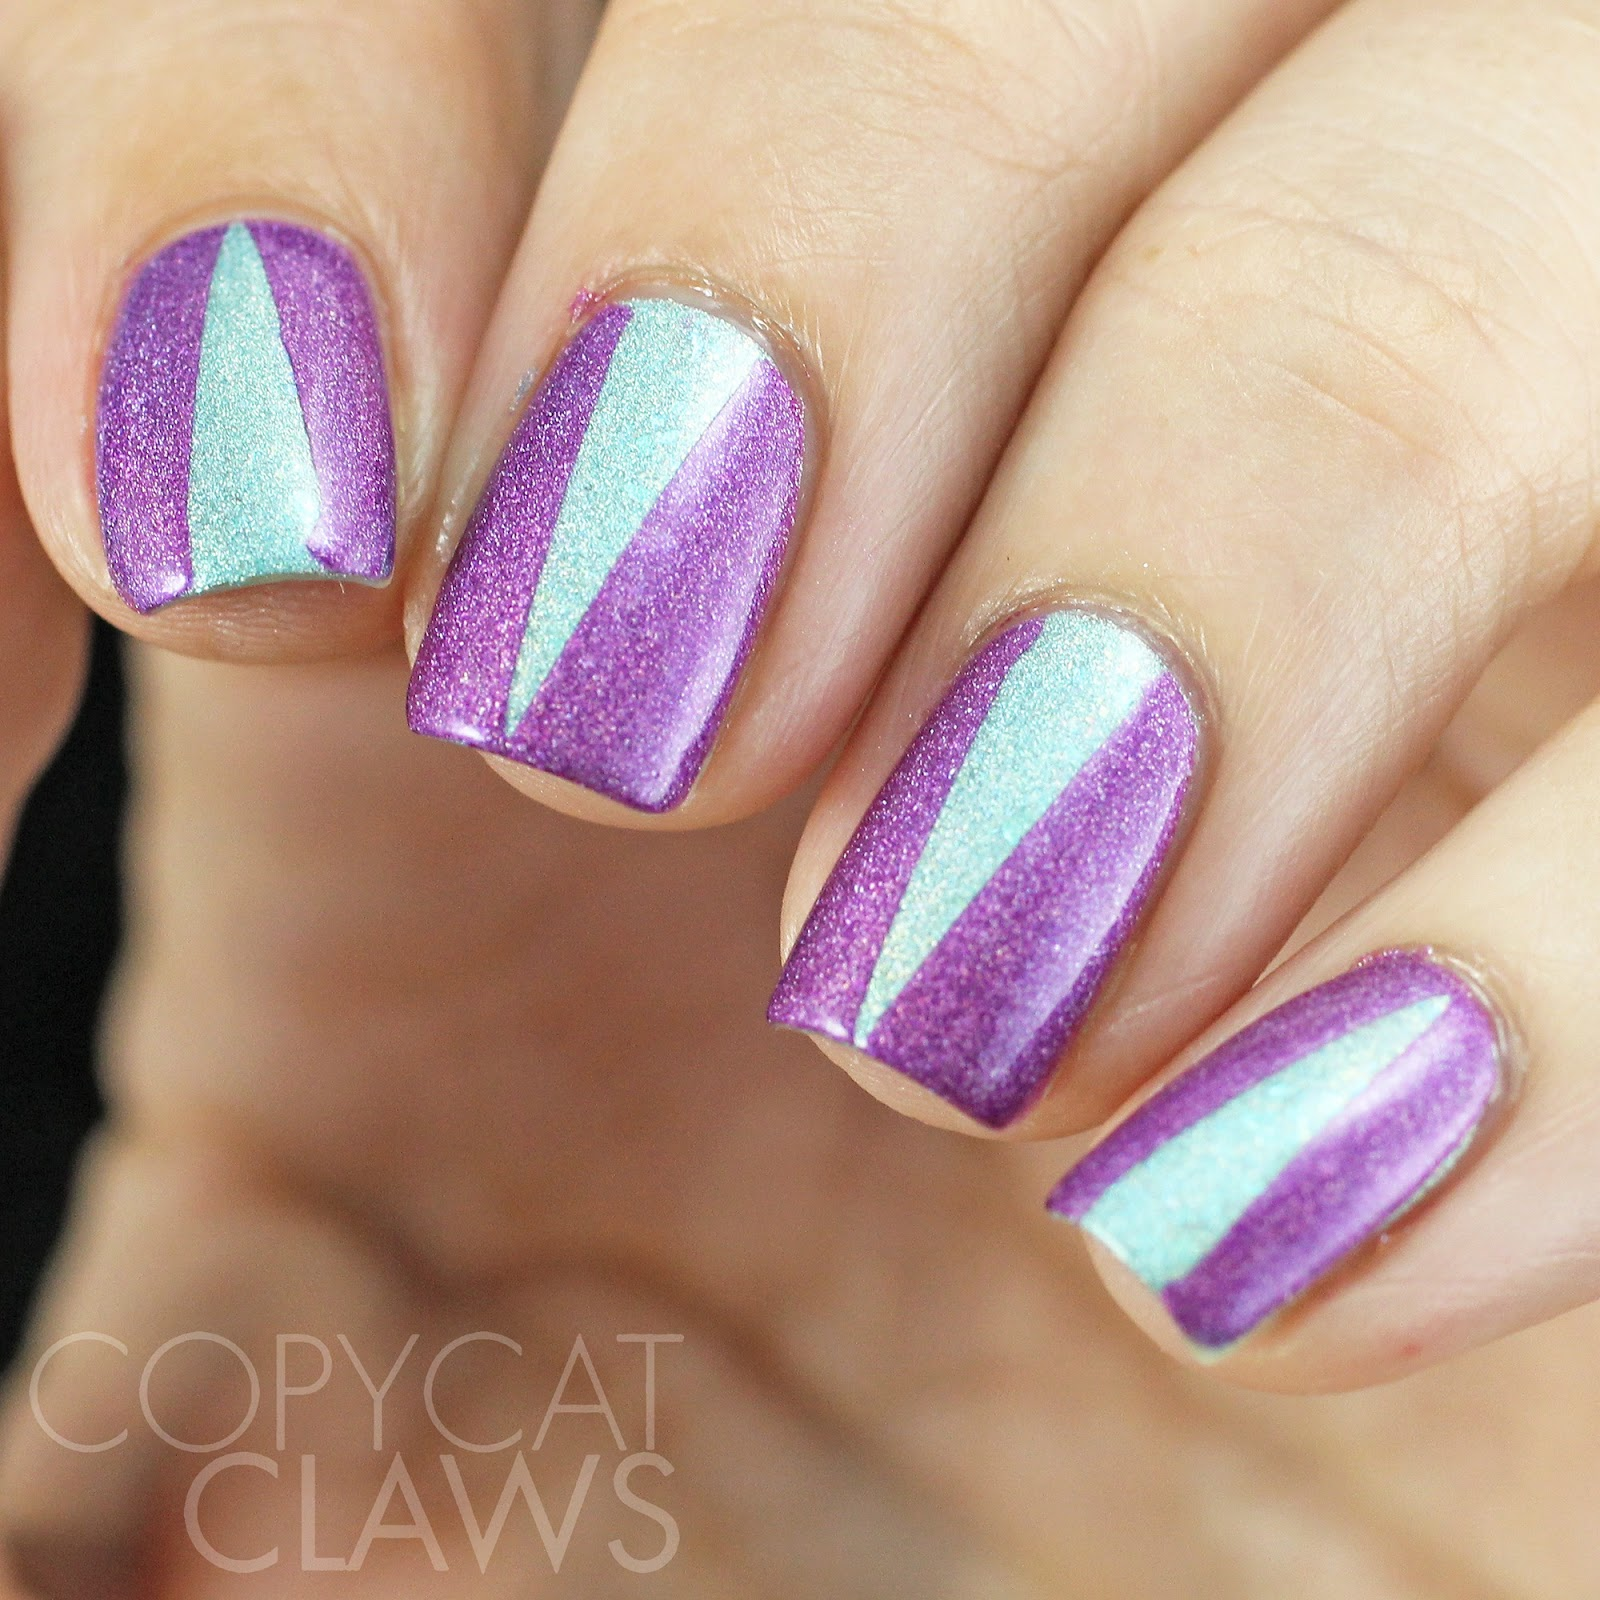 Girly Nail Art: Copycat Claws: Girly Bits Triangle Nail Art